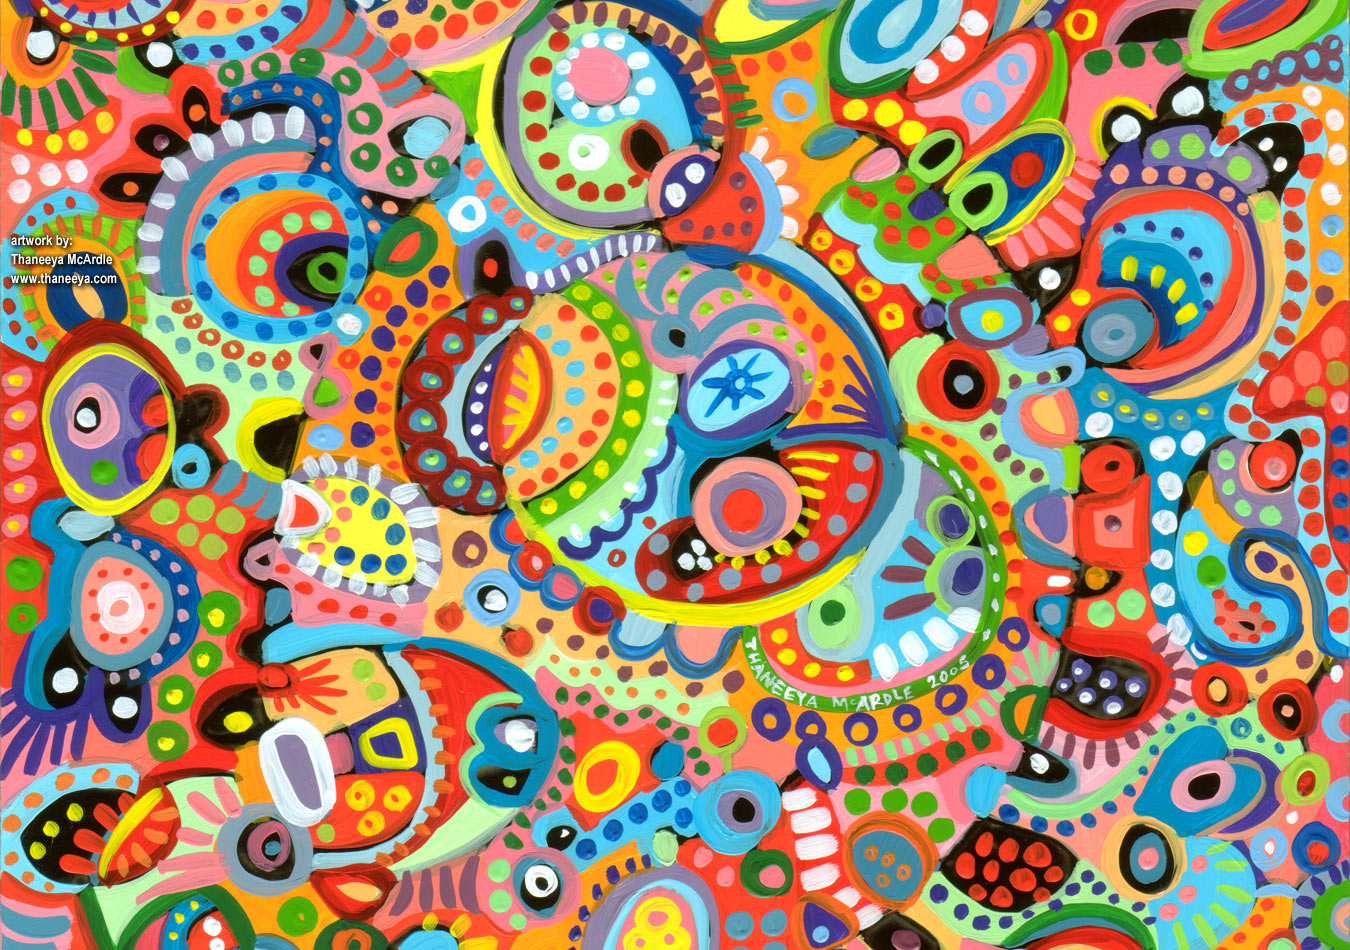 abstract funky pattern wallpaper - photo #32